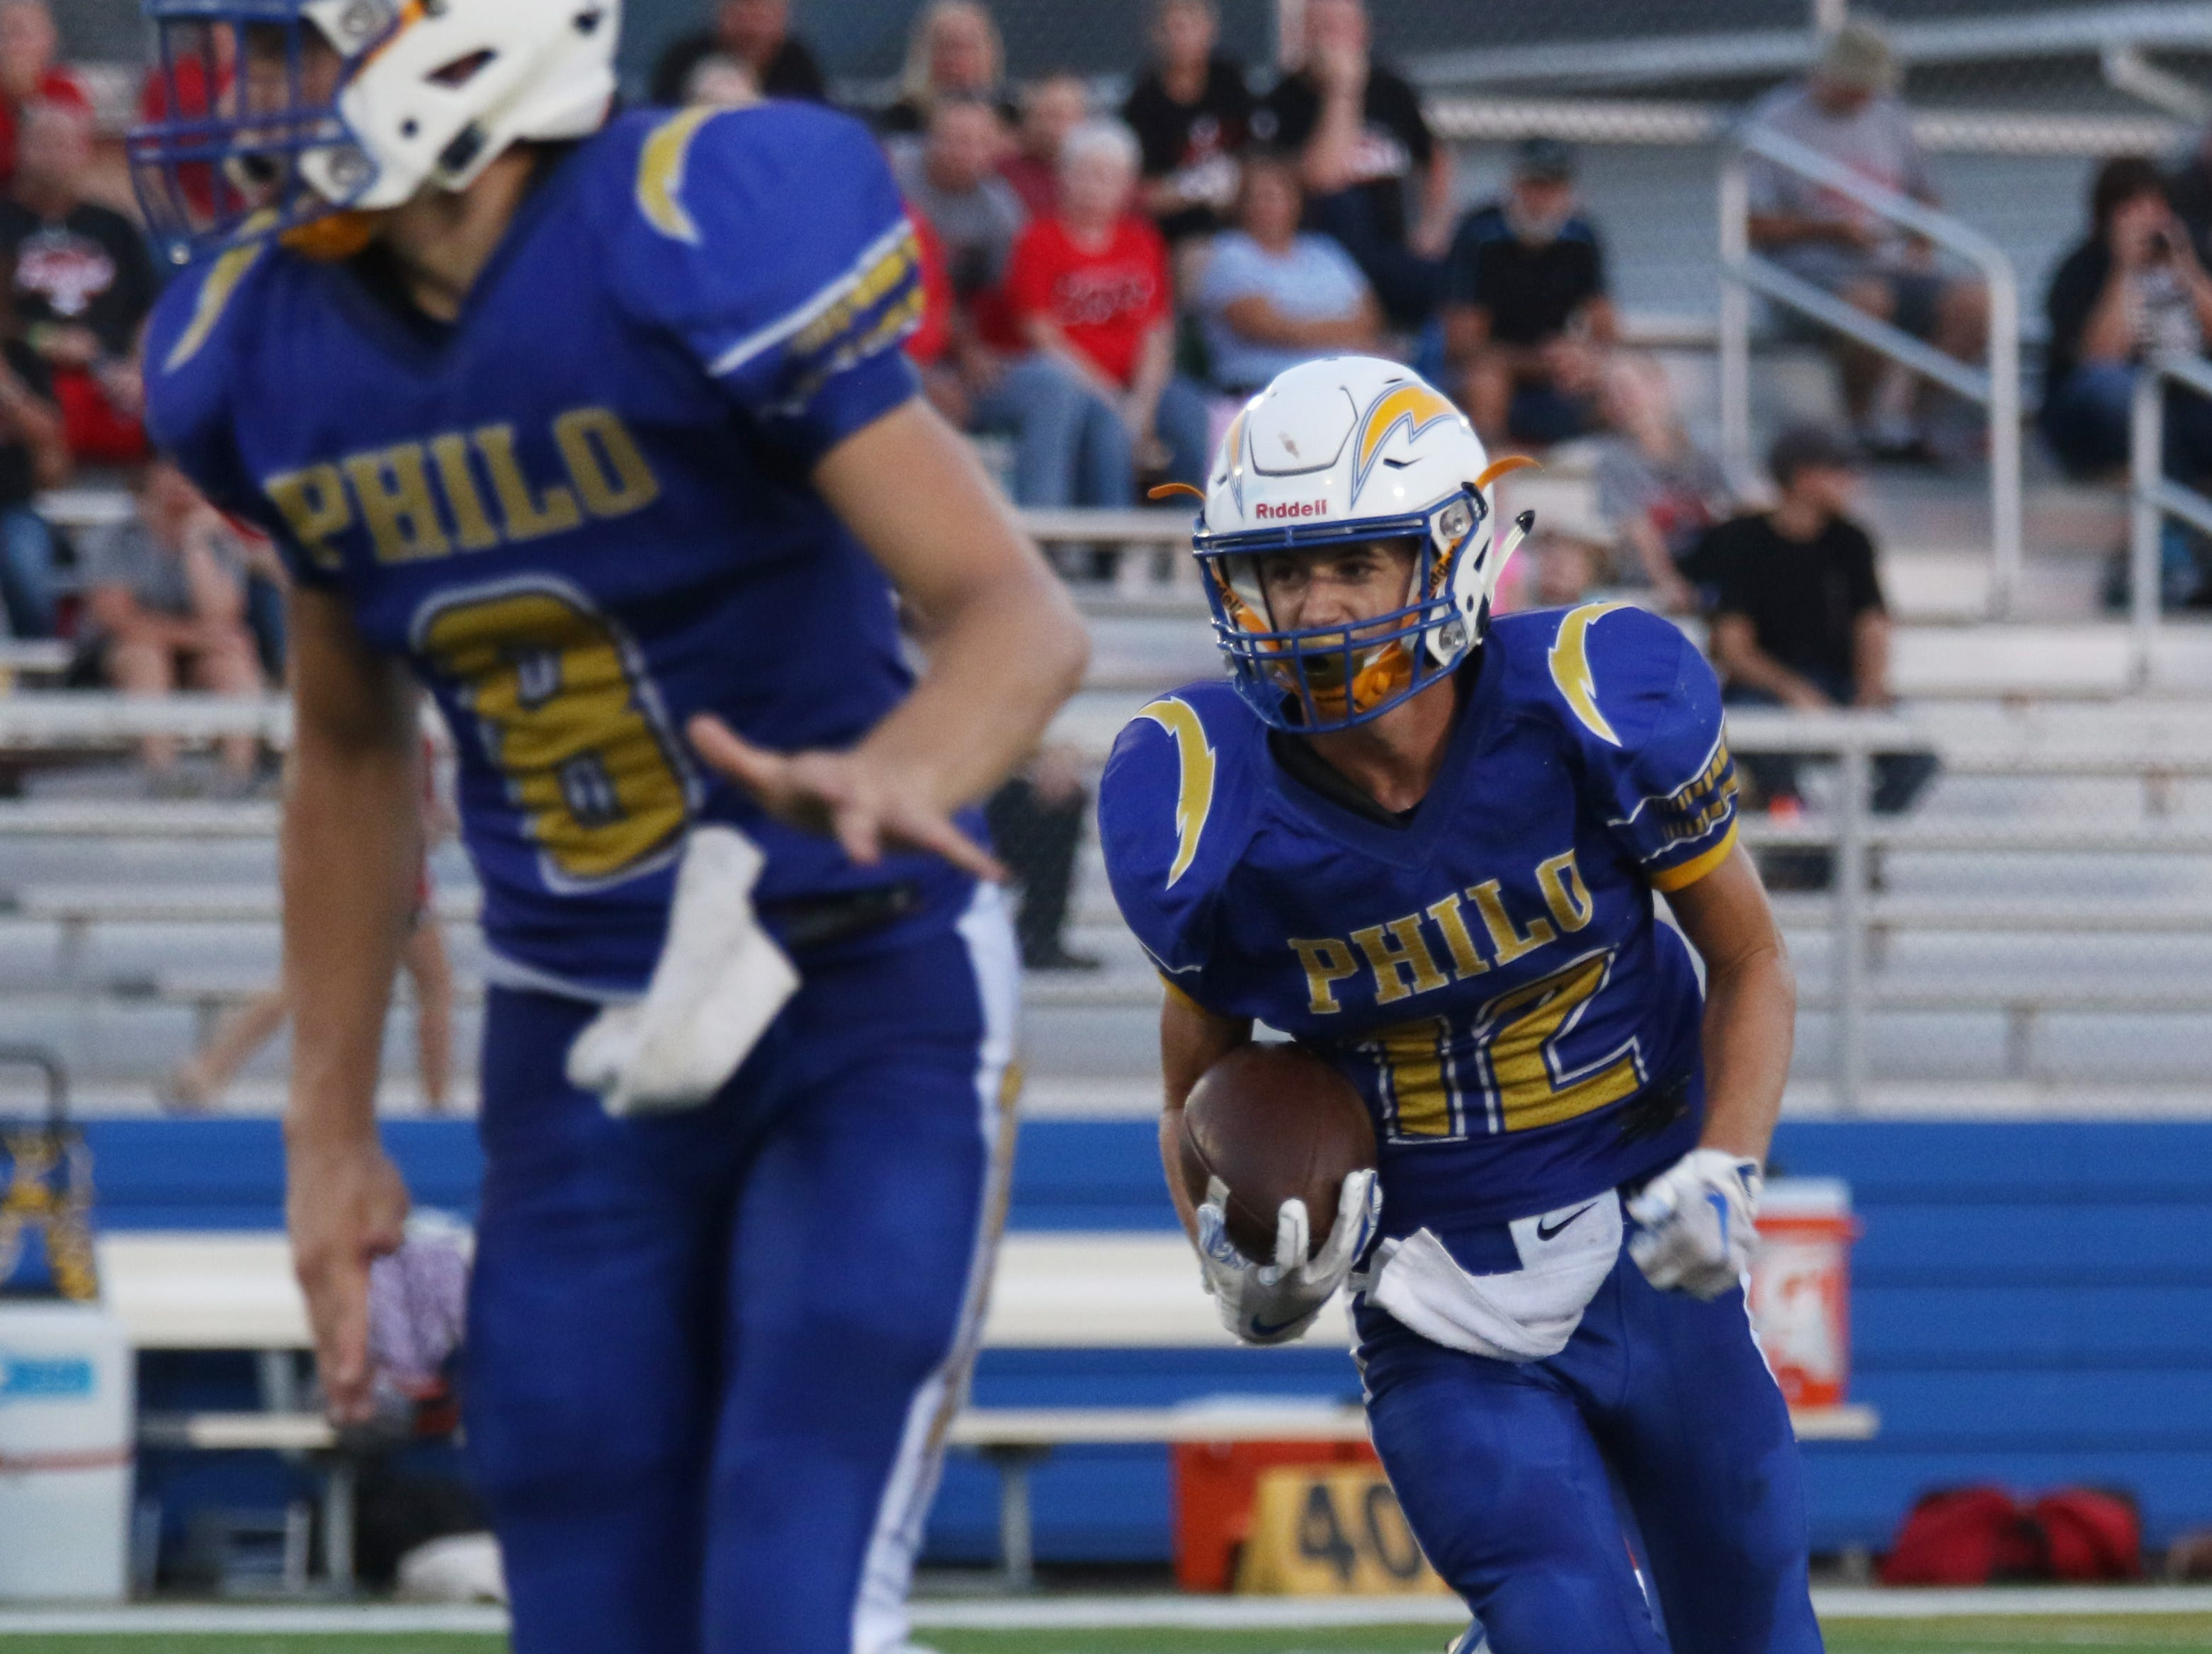 Philo's Aaronn Philip carries the ball against Crooksville.